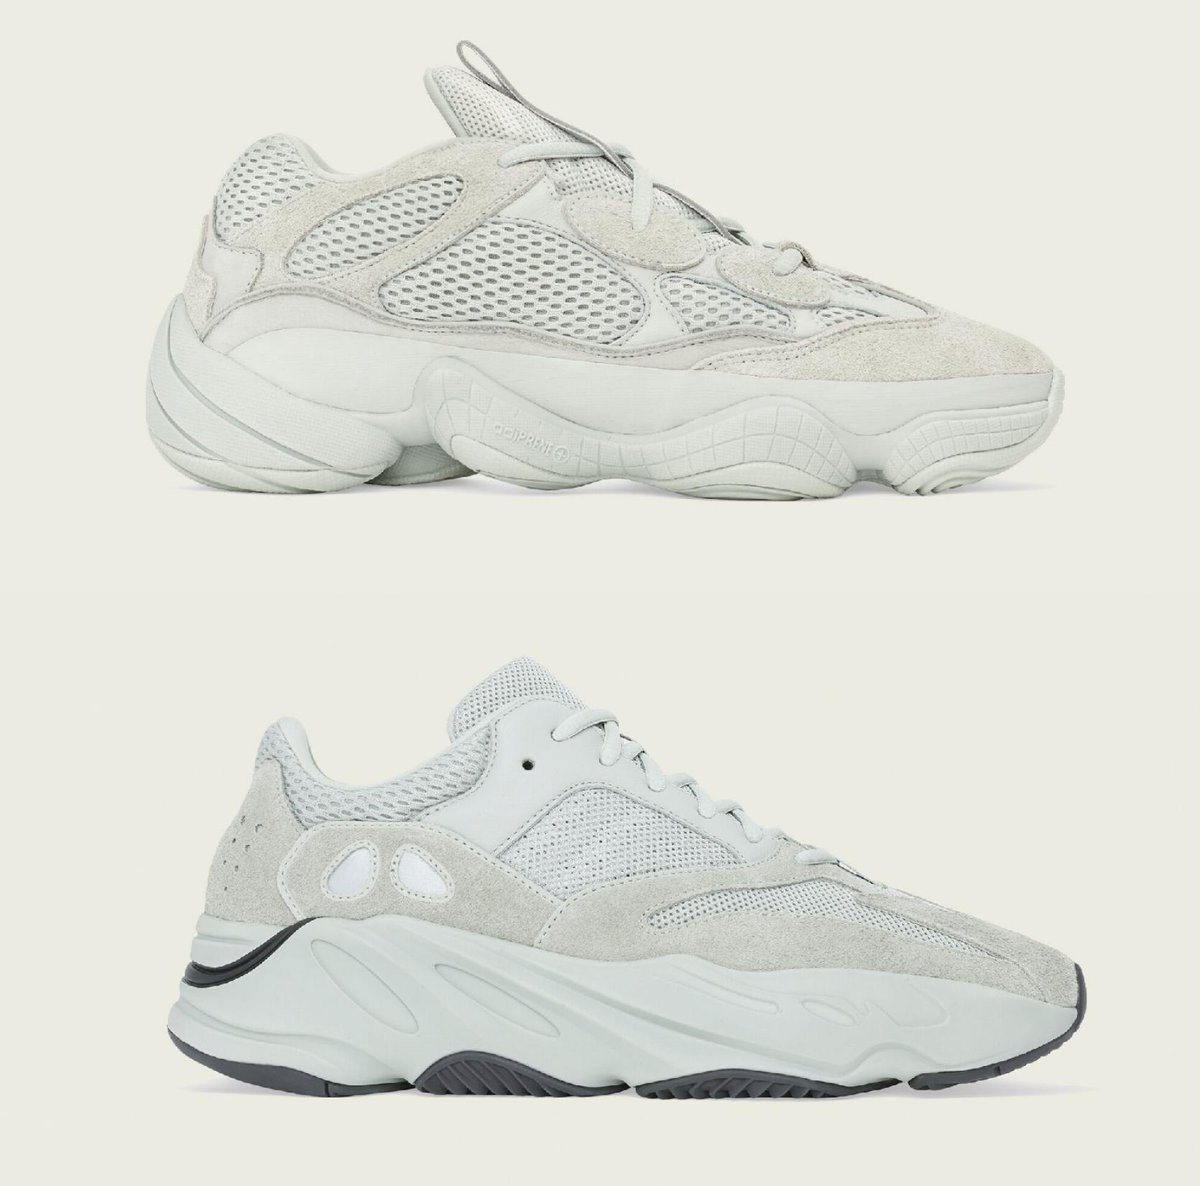 differently 5f39b 8d172 yeezy700salt hashtag on Twitter